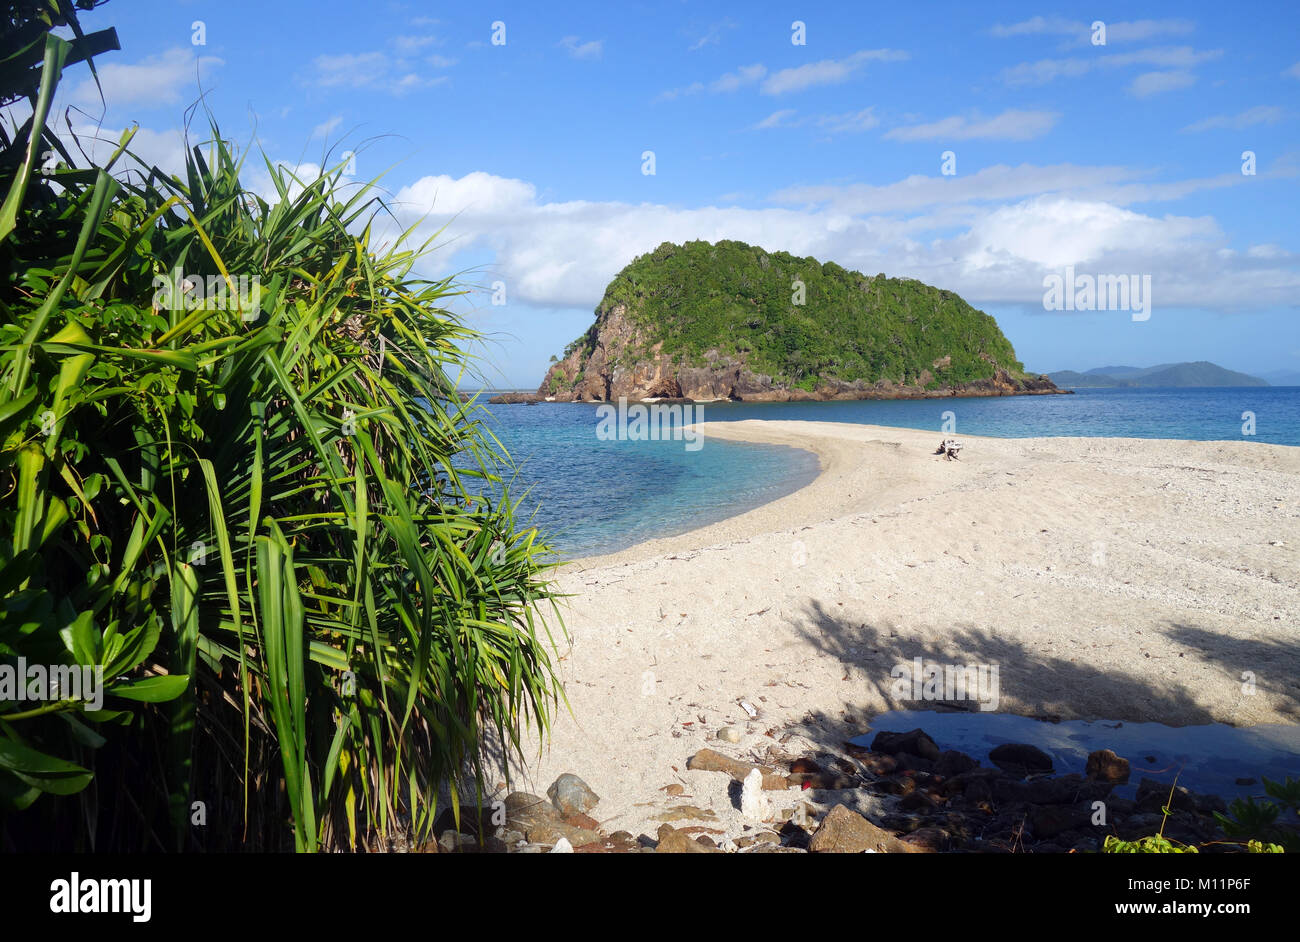 Kent Island, Barnard Island Group National Park, Queensland, Australia Stock Photo